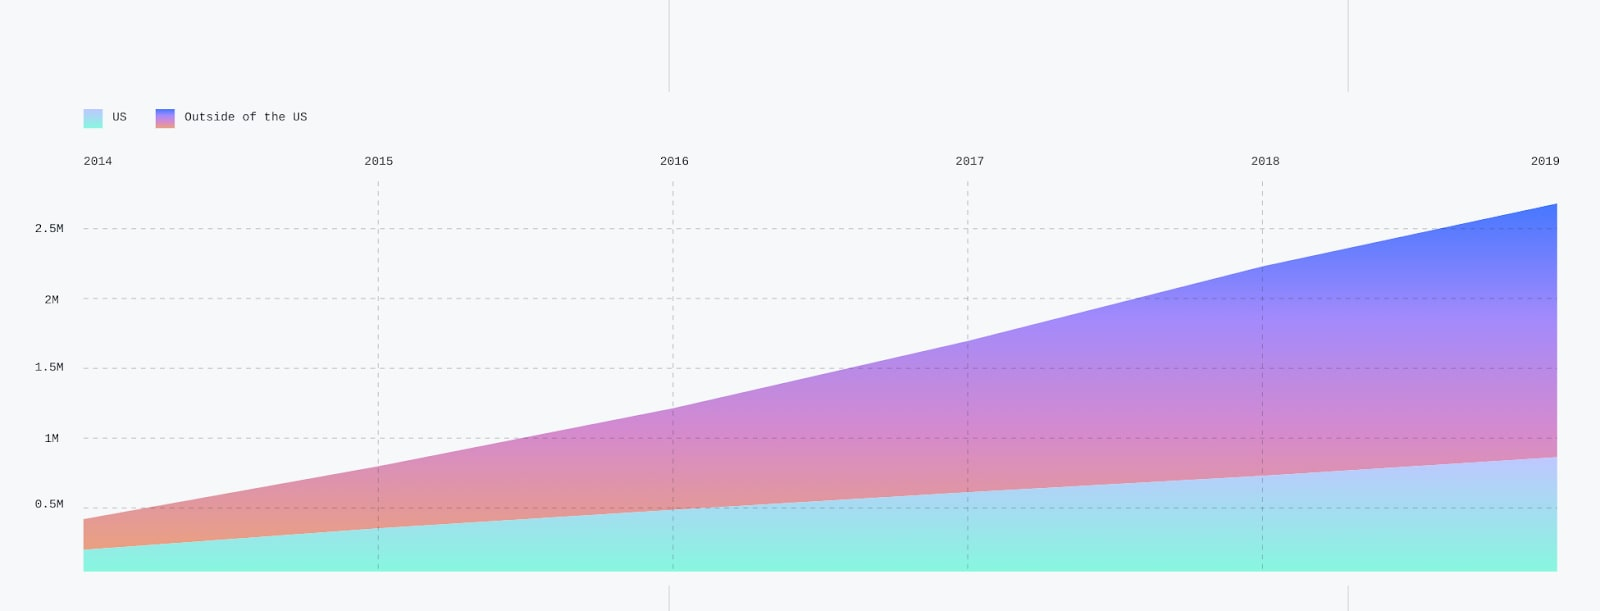 Contributions to open source graph, most from outside of the US and growing